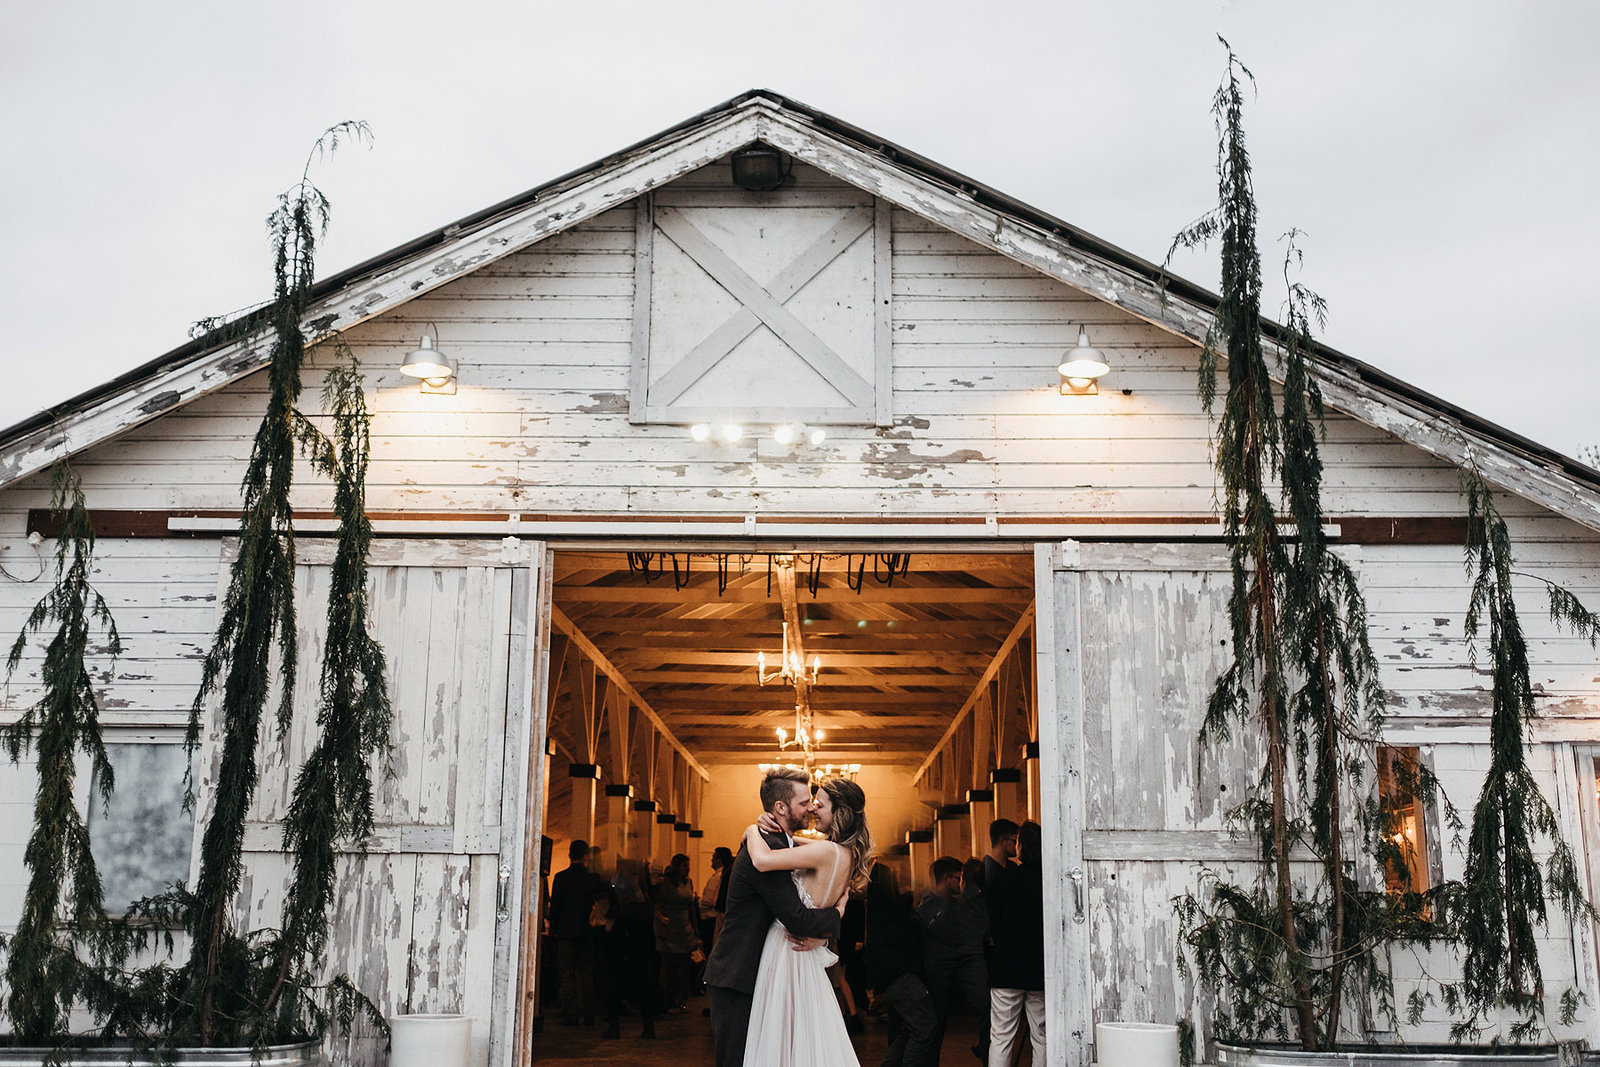 athena-and-camron-seattle-wedding-photographer-dairyland-snohomish-rustic-barn-wedding-flowers-styling-inspiration-lauren-madison-86